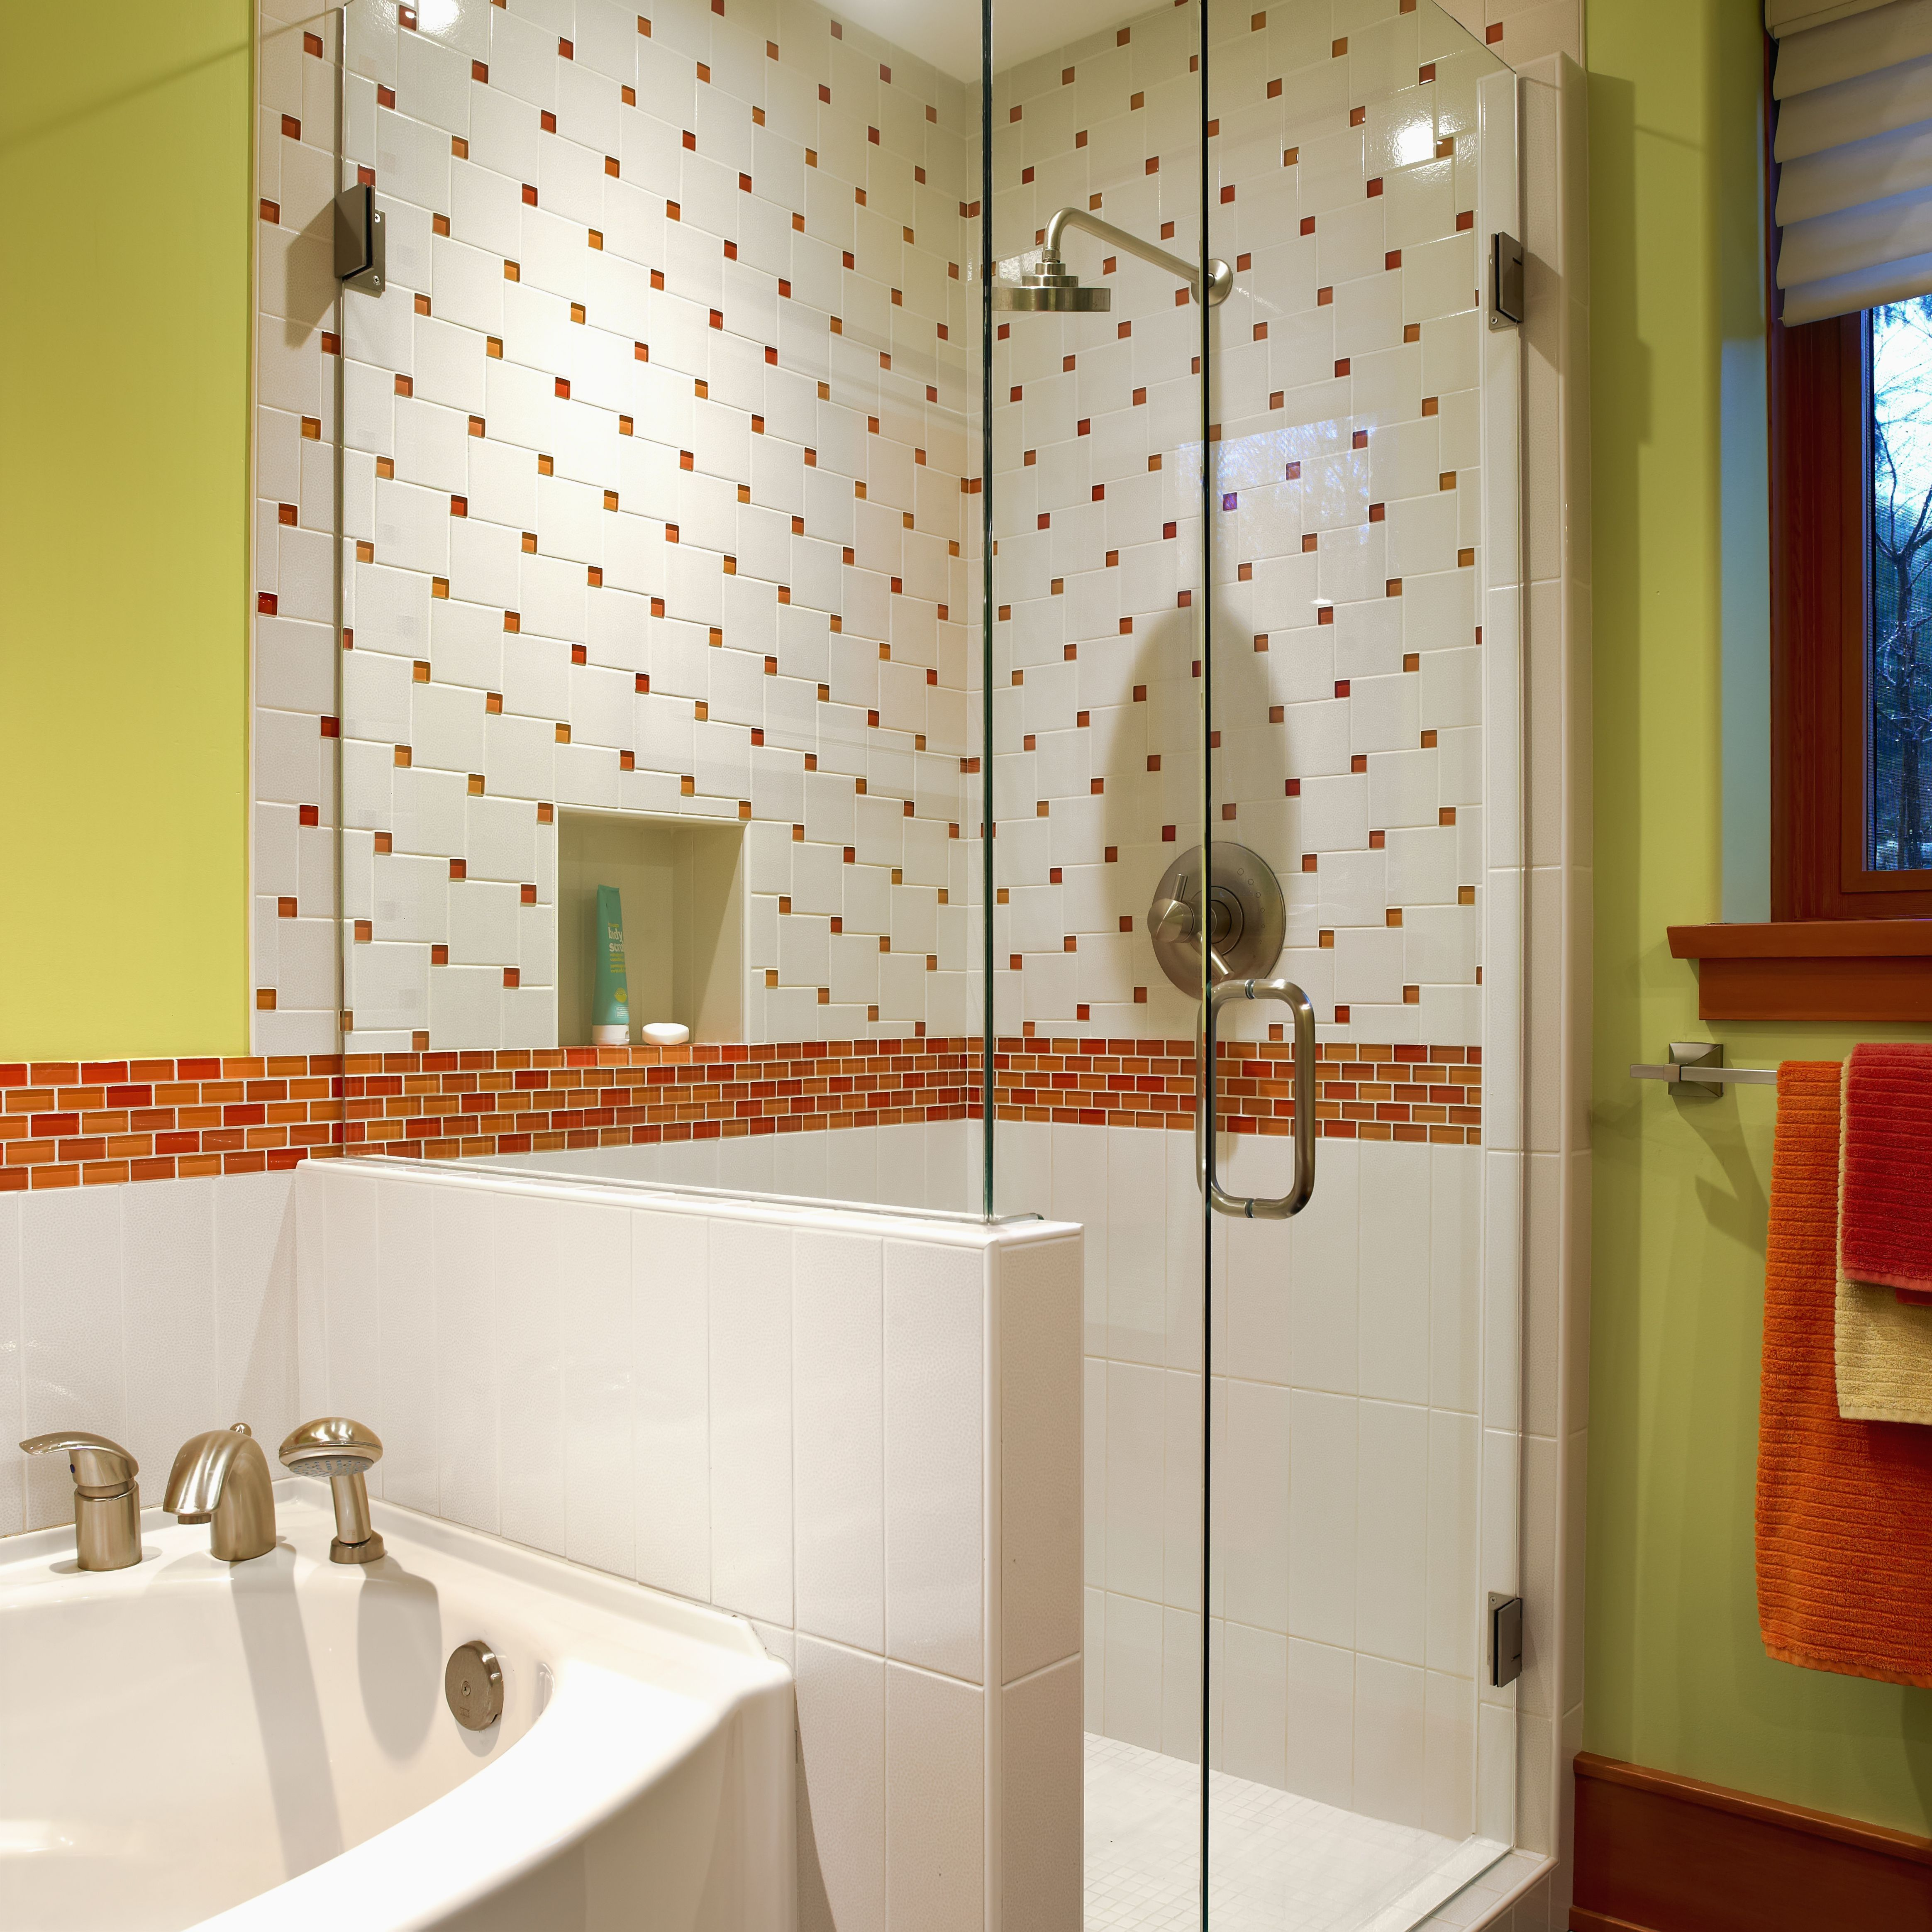 Tile work in bathrooms - How Listellos Make Your Tile Work Shine